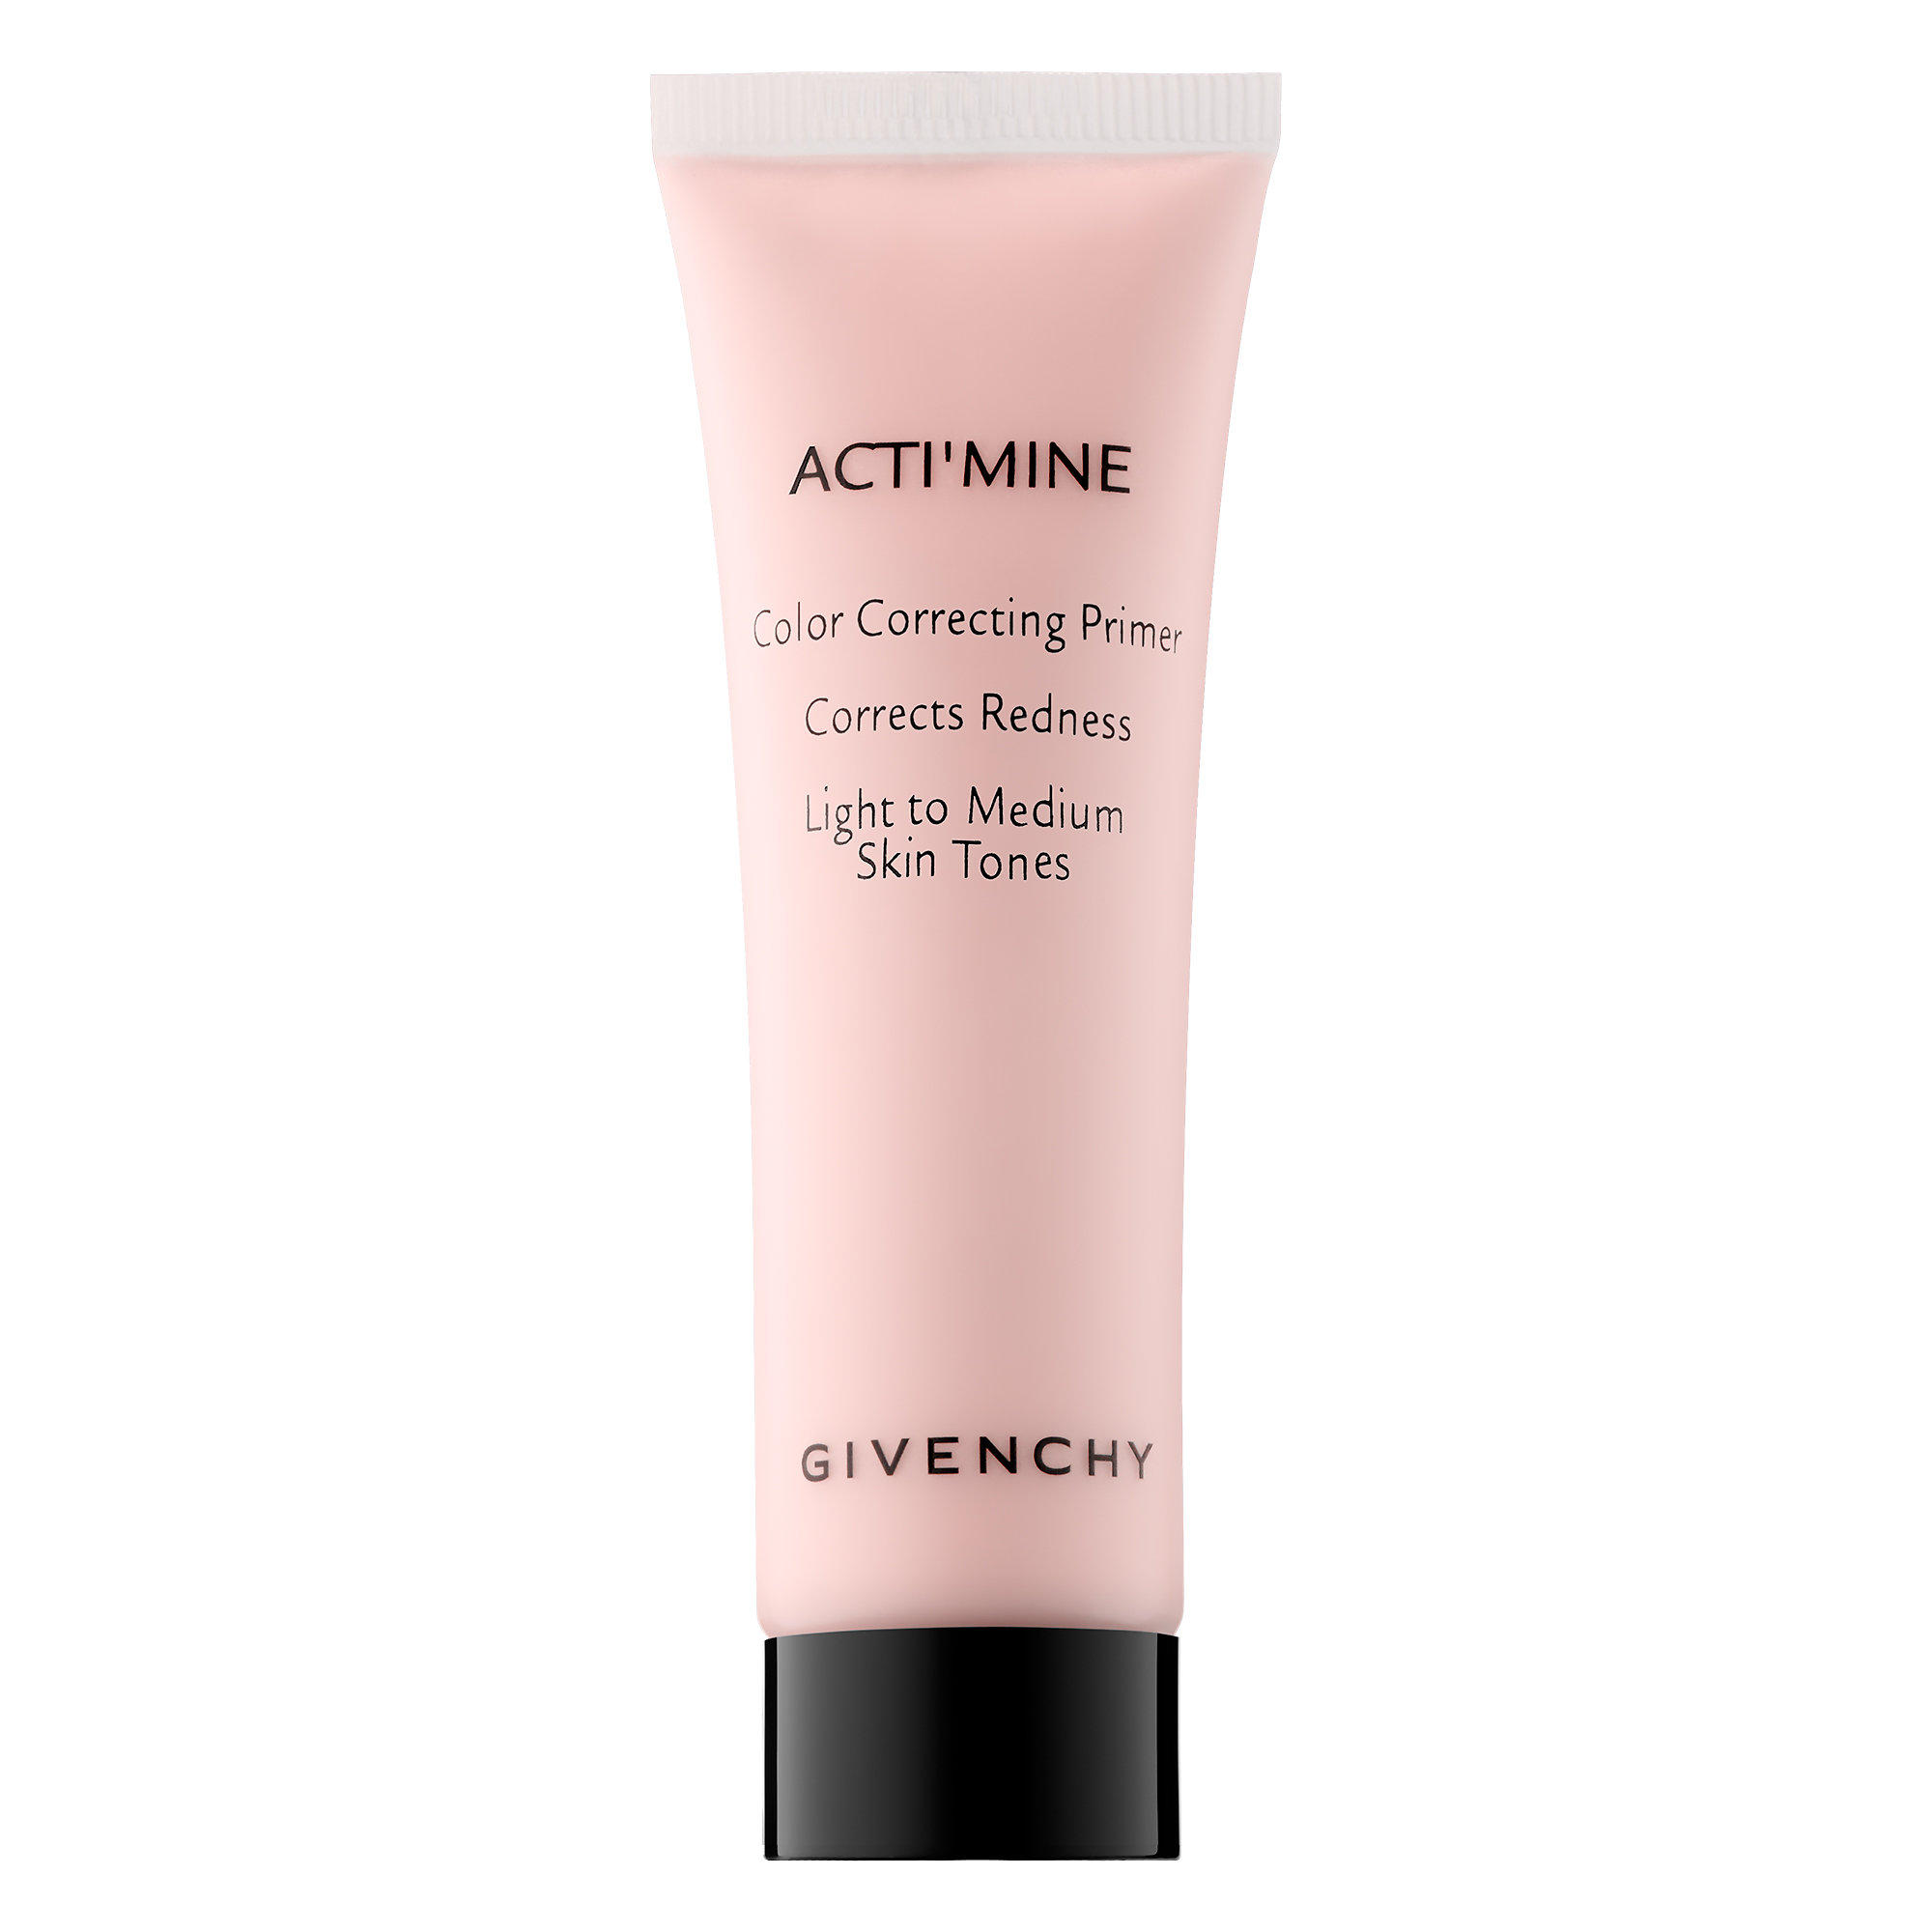 New ReleaseGivenchy launched new Acti'Mine Wake-up Skin Makeup Base